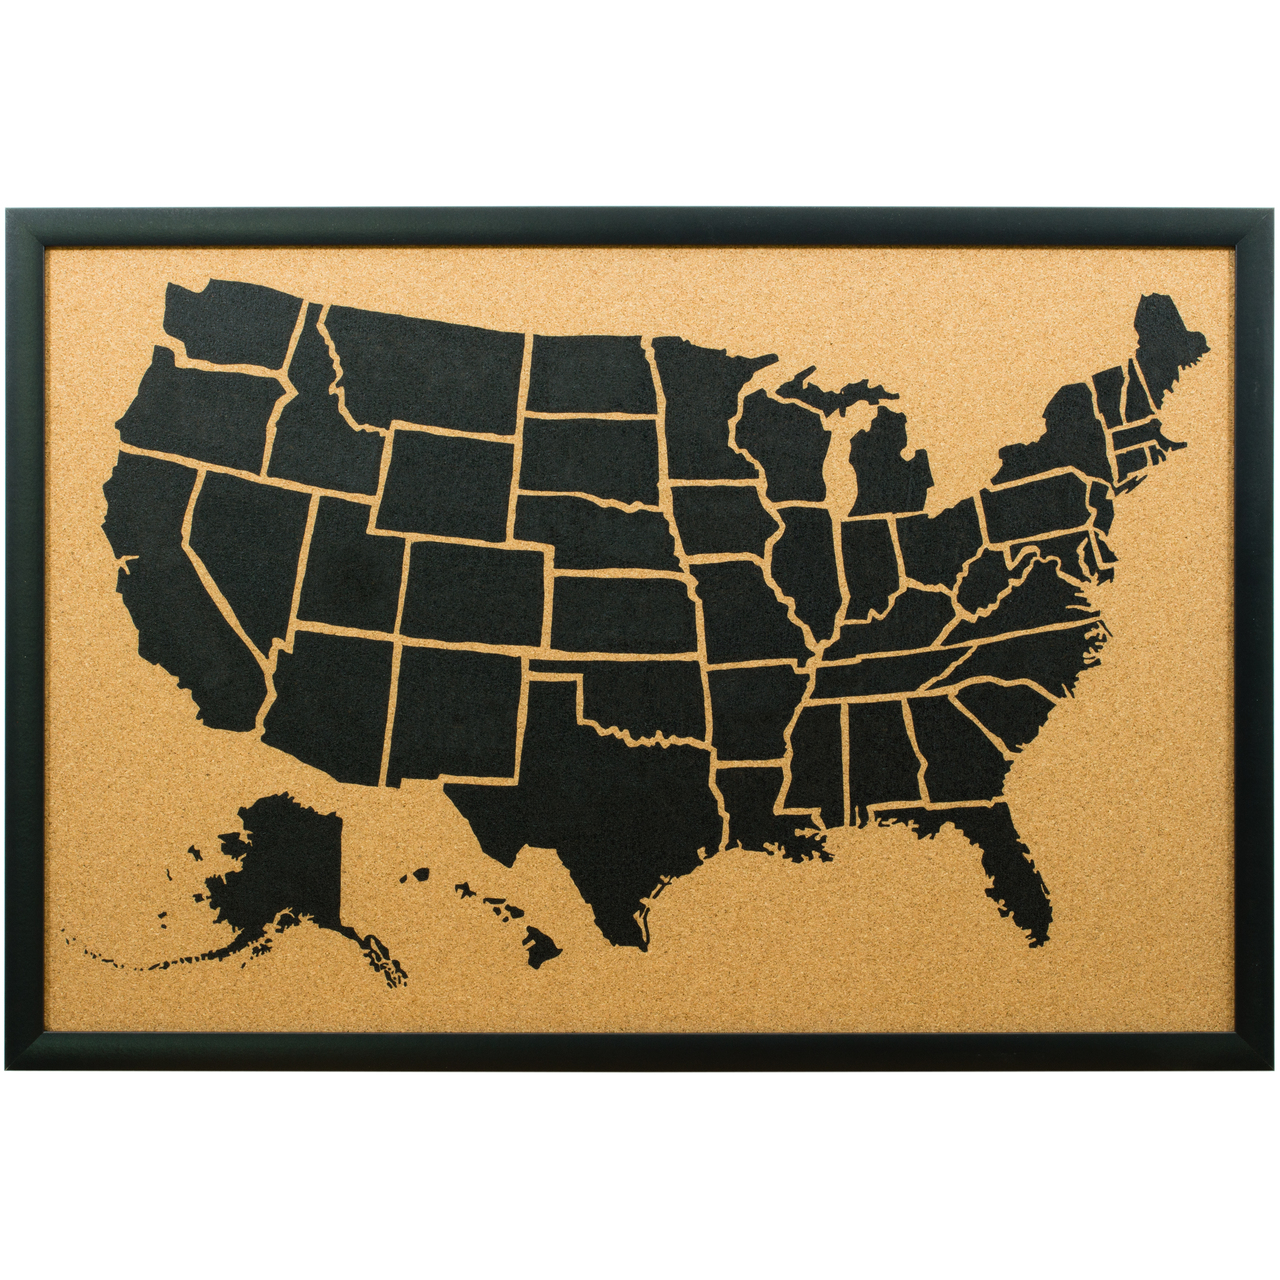 Wayfarer Corkboard Sm. Illustrated Push Pin Map - Craig Frames